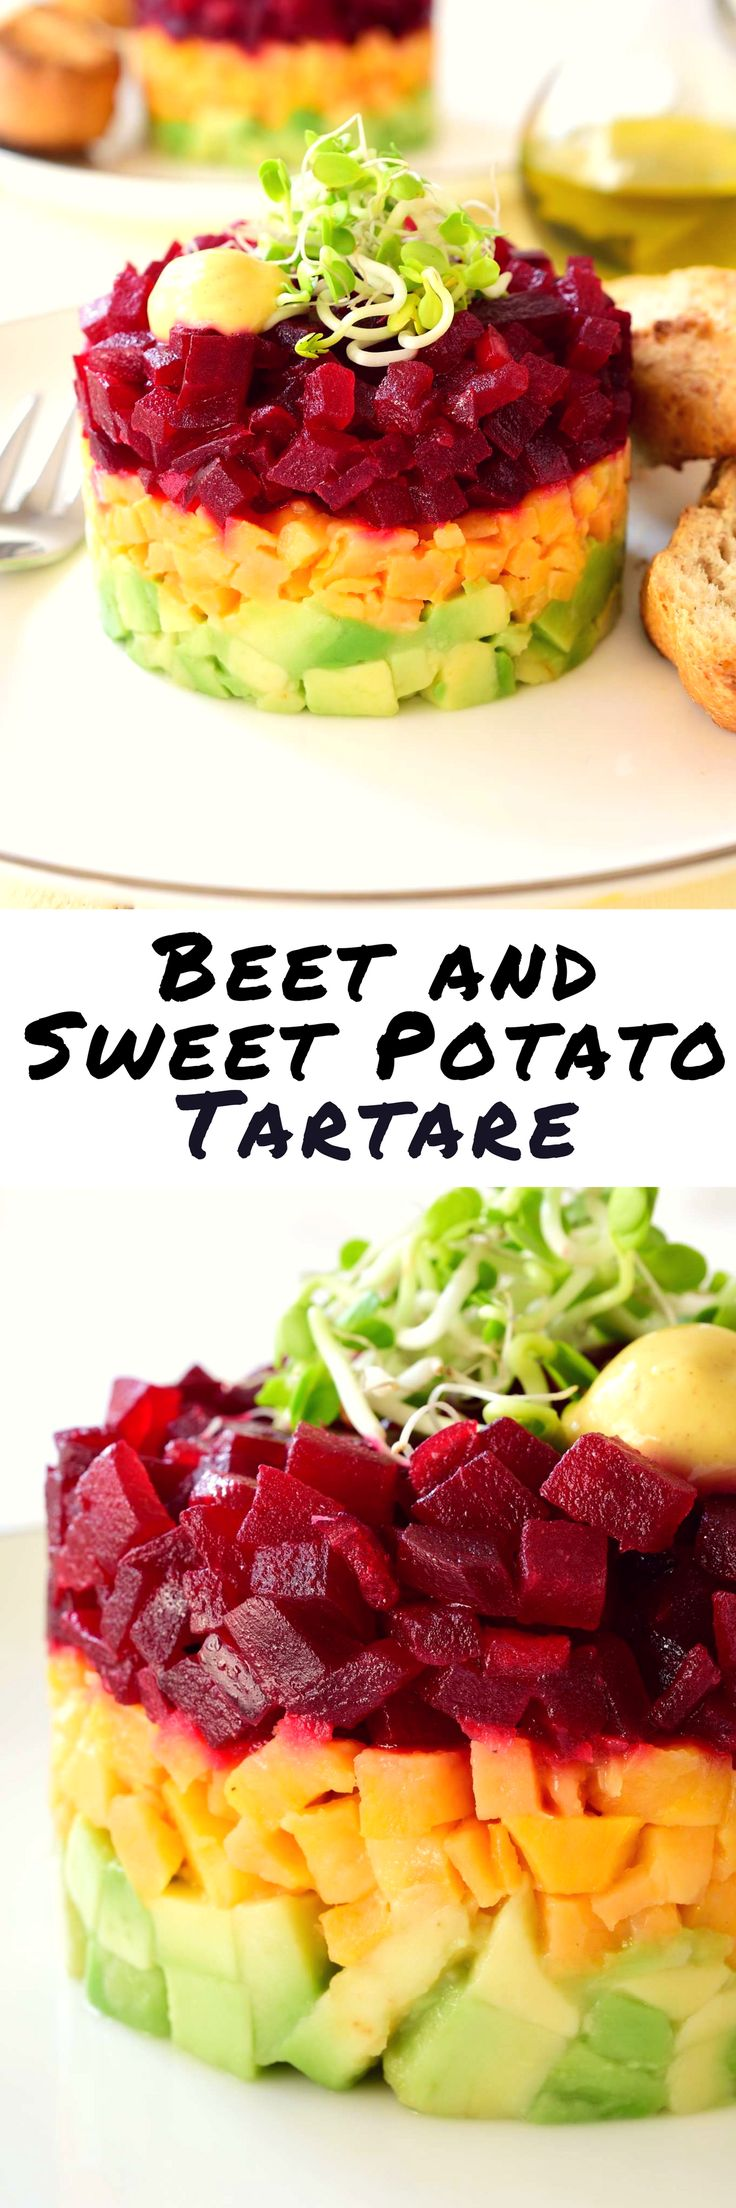 Beet and sweet potato tartare is such a simple dish but makes a colourful and attractive vegan appetizer. The recipe makes the most of seasonal vegetables and lets them shine with just a simple dressing of olive oil and lemon juice. This vegan tartare recipe is so full of textures and flavours that you'll want to make it again and again!